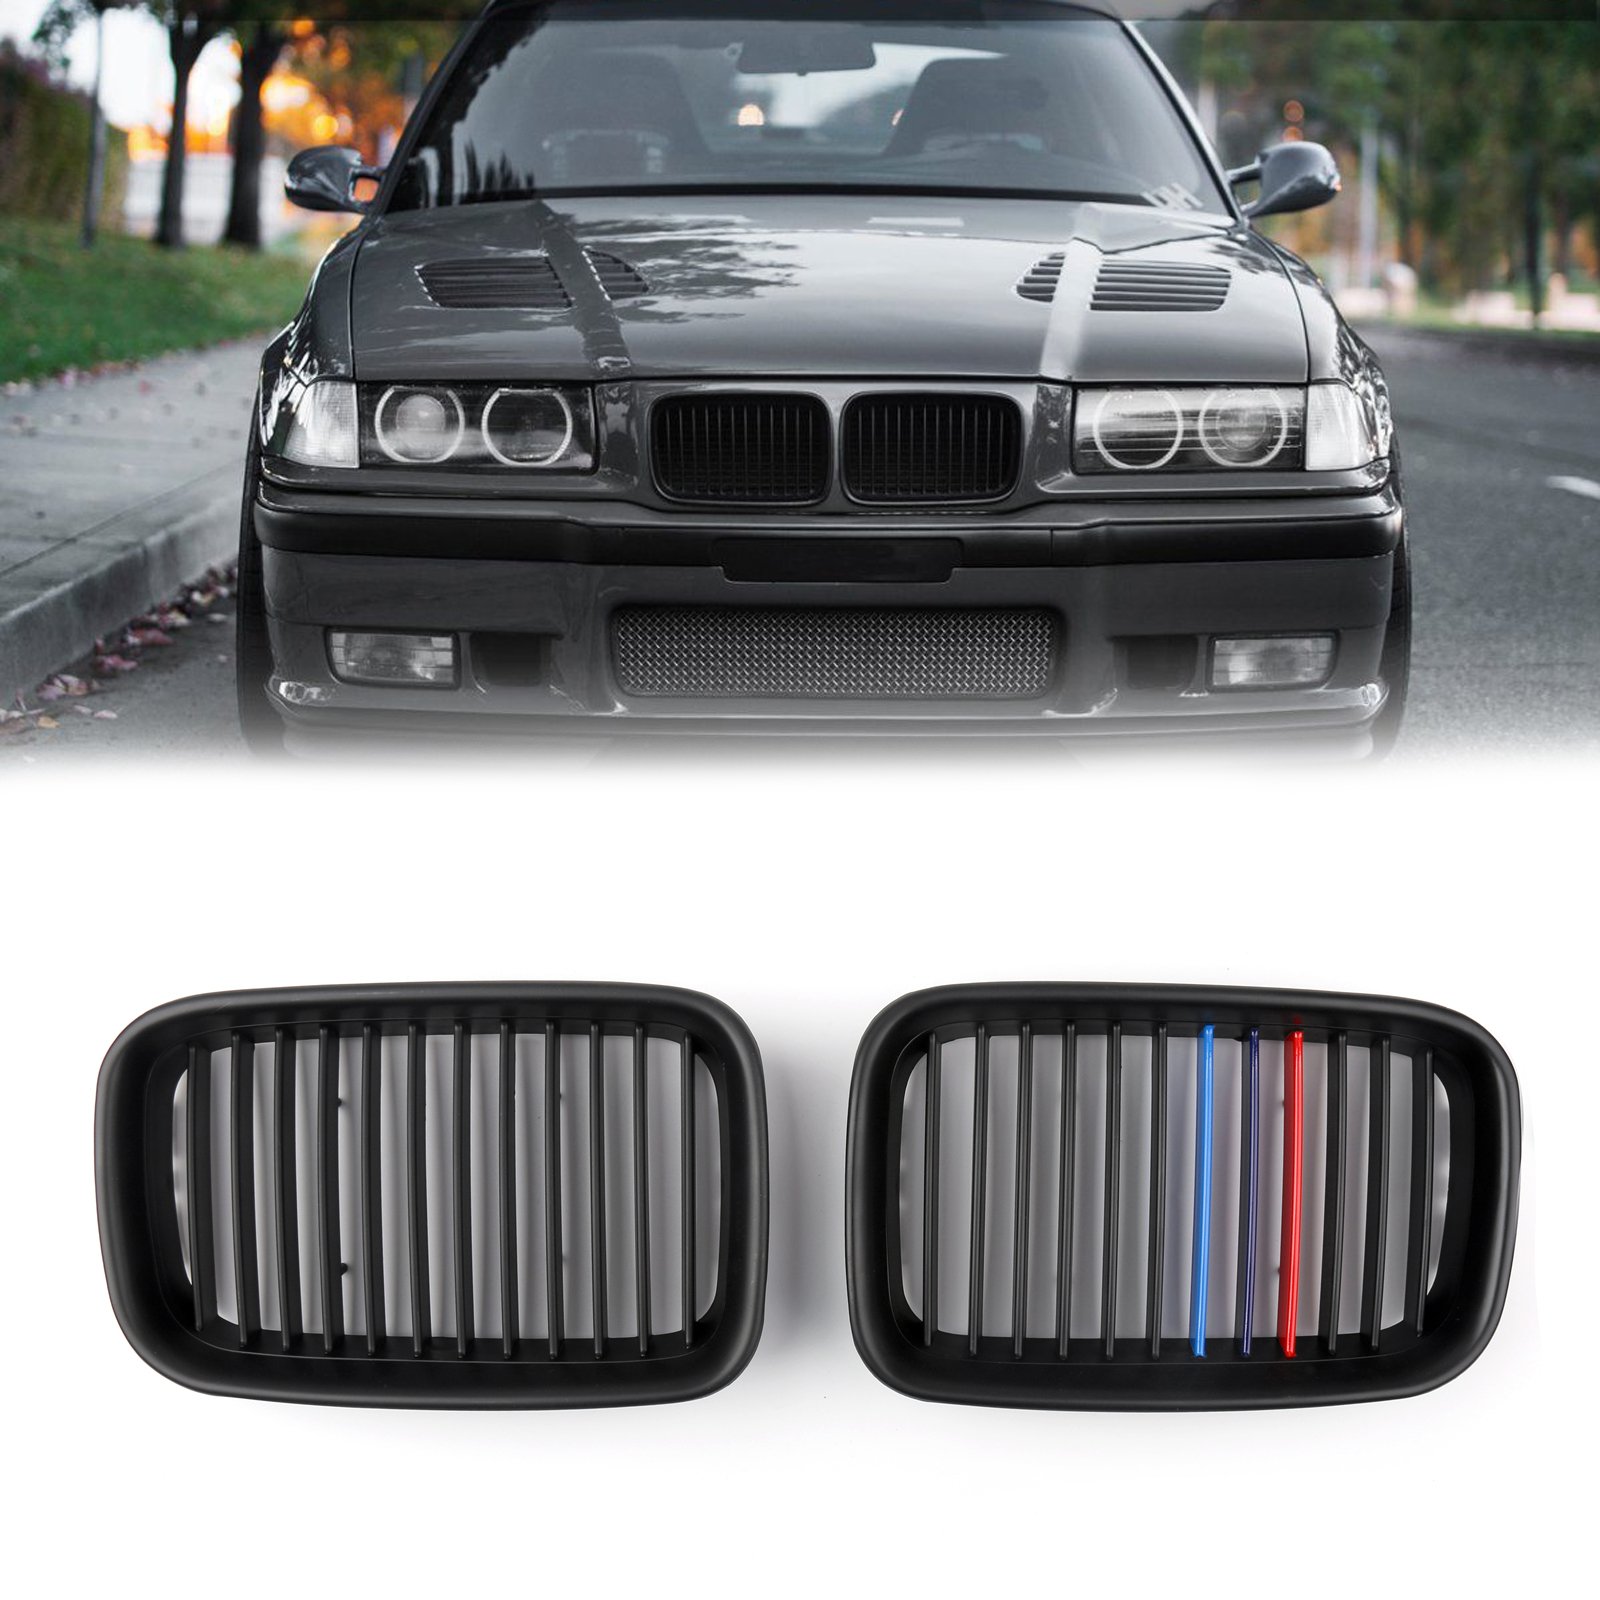 1Pair Matte Black Front Hood Grille Kidney For BMW E36 3